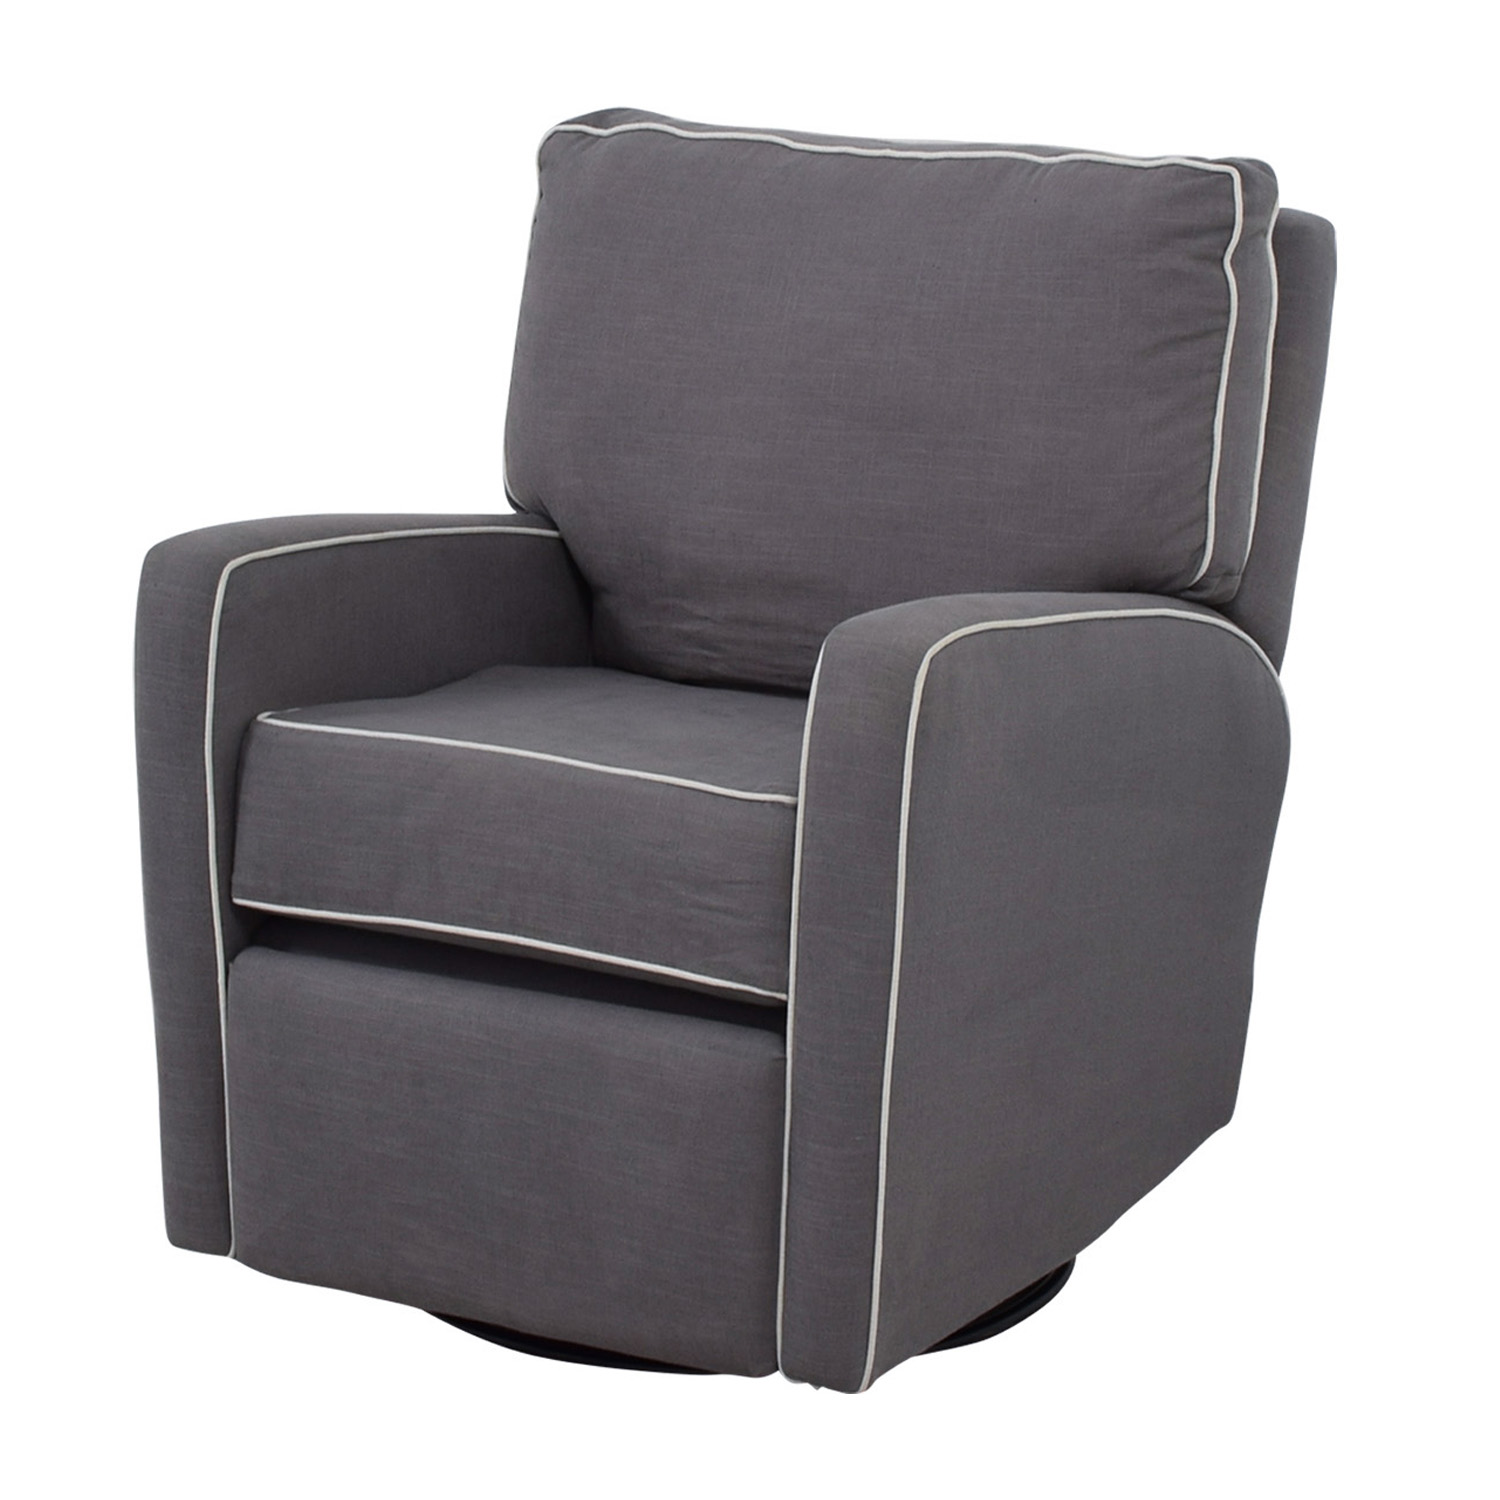 Accent Rocking Chairs 37 Off Grey With White Trim Rocking Chair Chairs